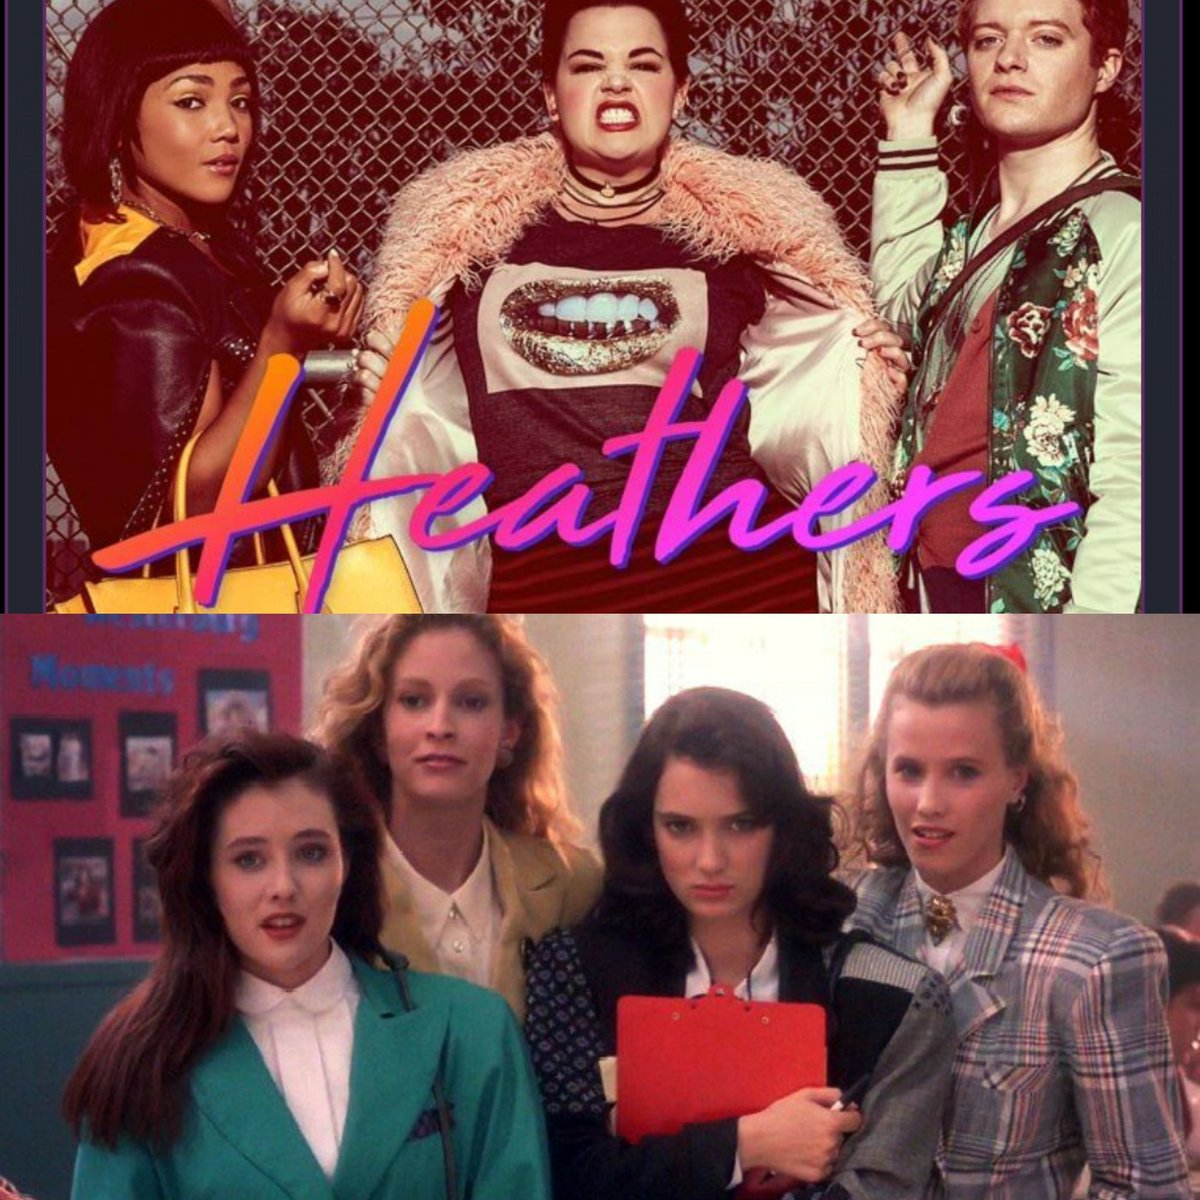 The Heathers casts from 2018 and the original movie